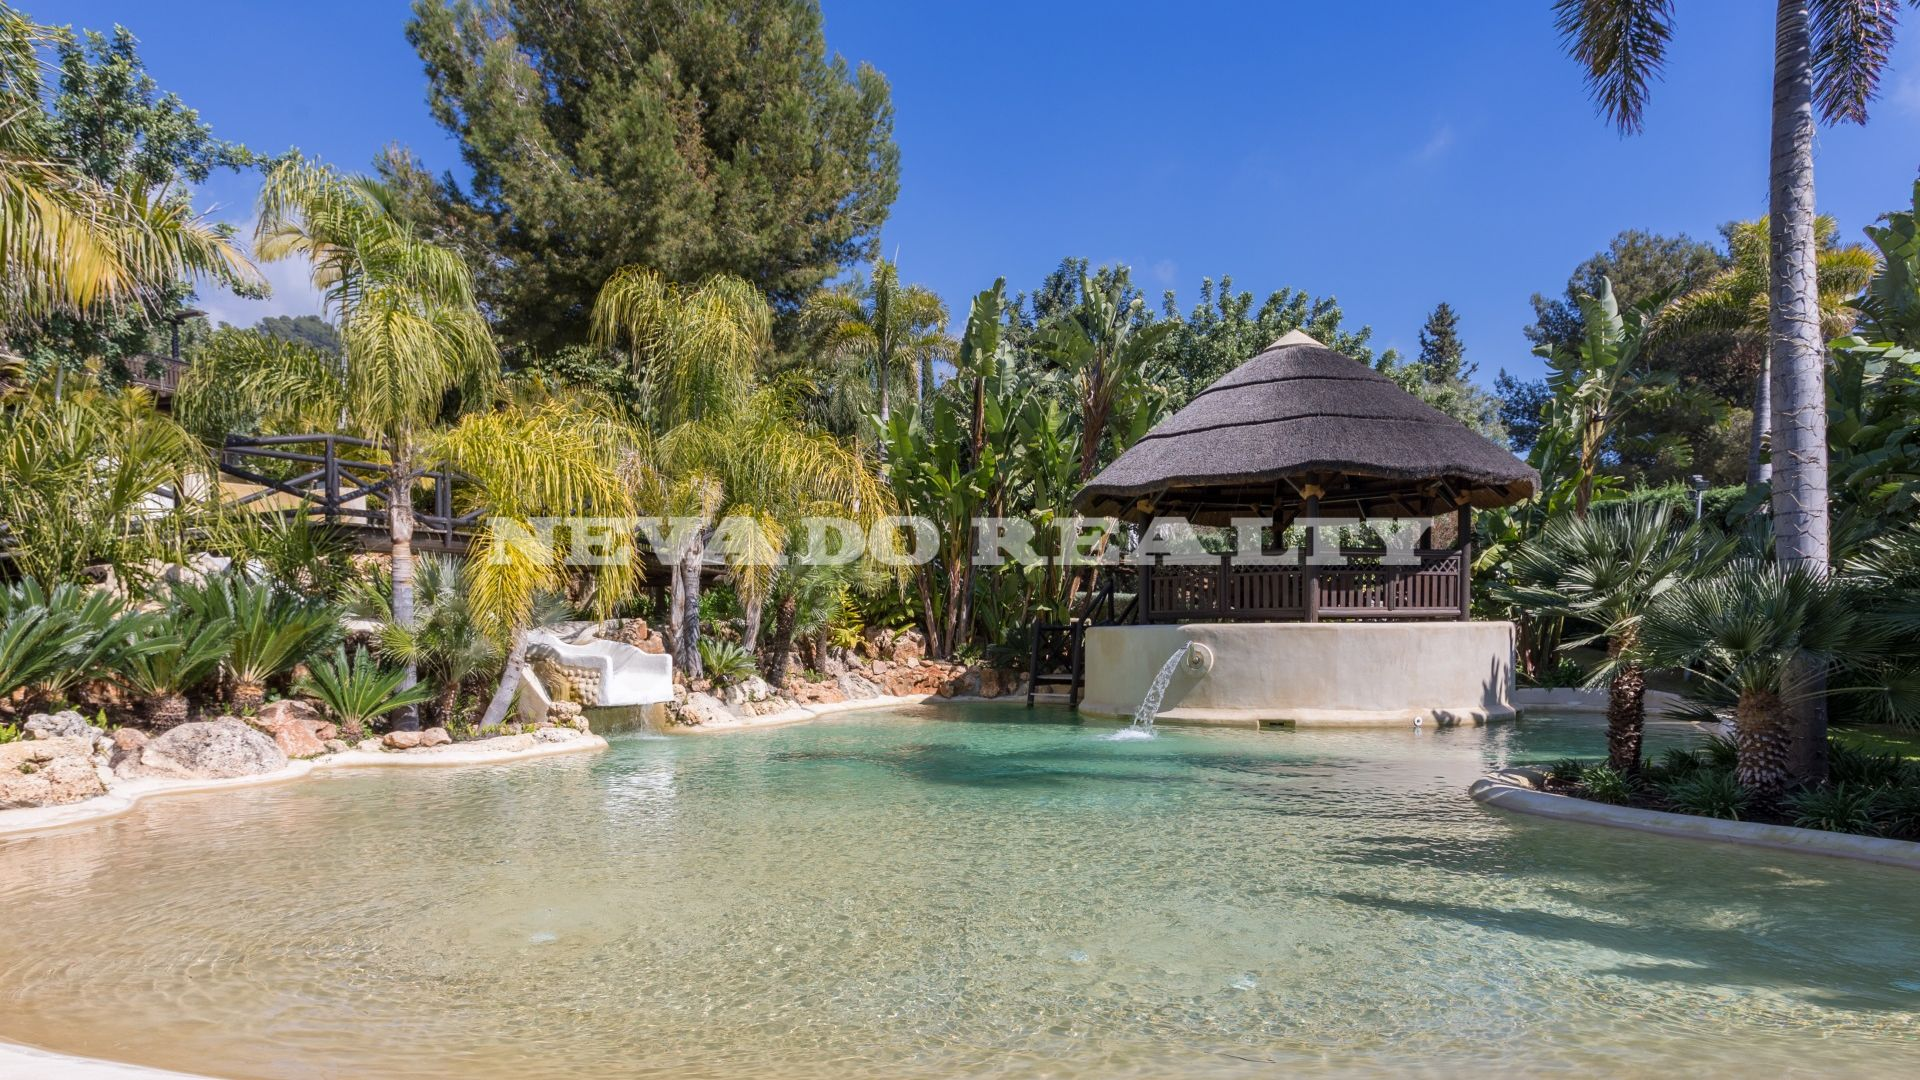 Outstanding villa in the Marbella Golden Mile with more than 8.000 sqm of land and mature gardens